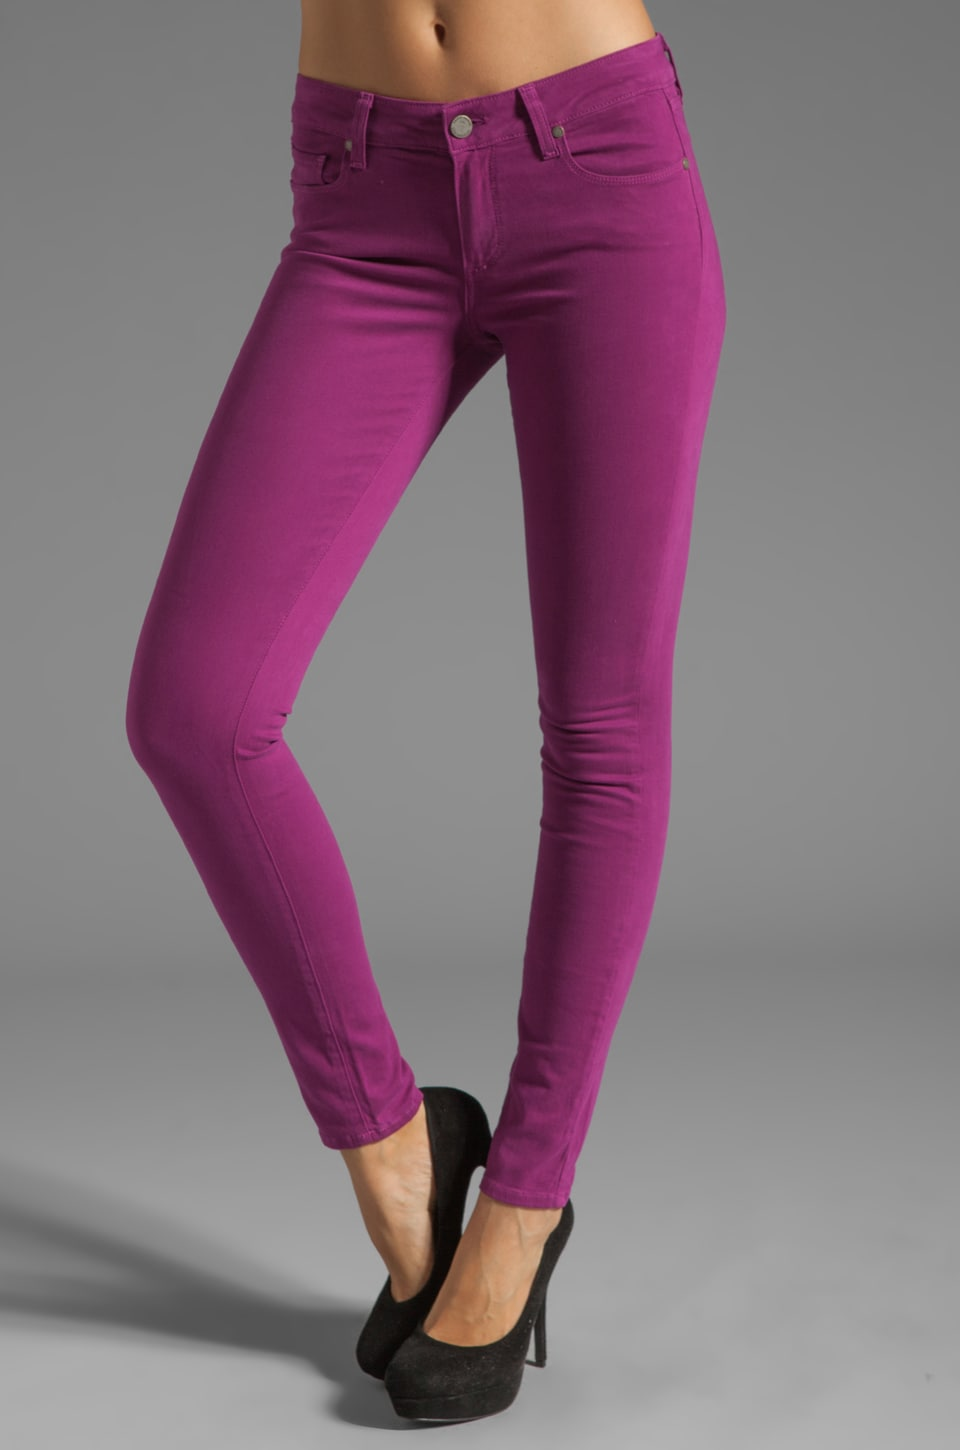 Paige Denim Verdugo Ultra Skinny in Sugar Plum